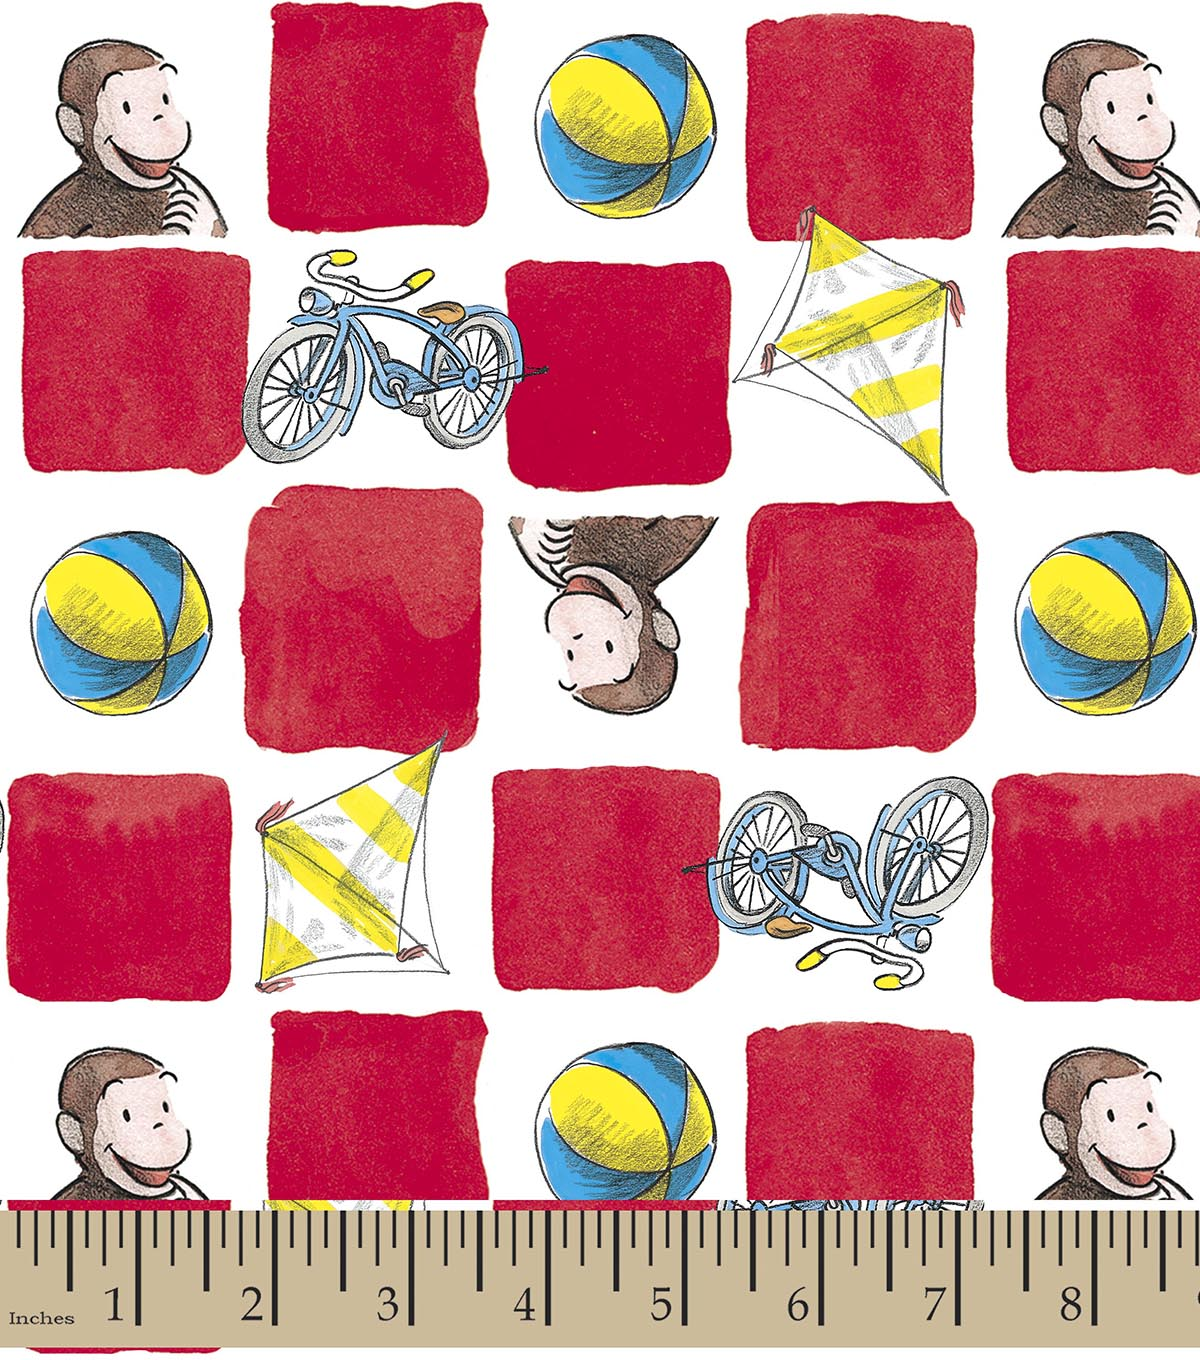 curious george wrapping paper Gift tags tissue paper gift bags wrapping paper stickers all gift wrapping curious george gifts achievement curious george wrapping paper $2530.